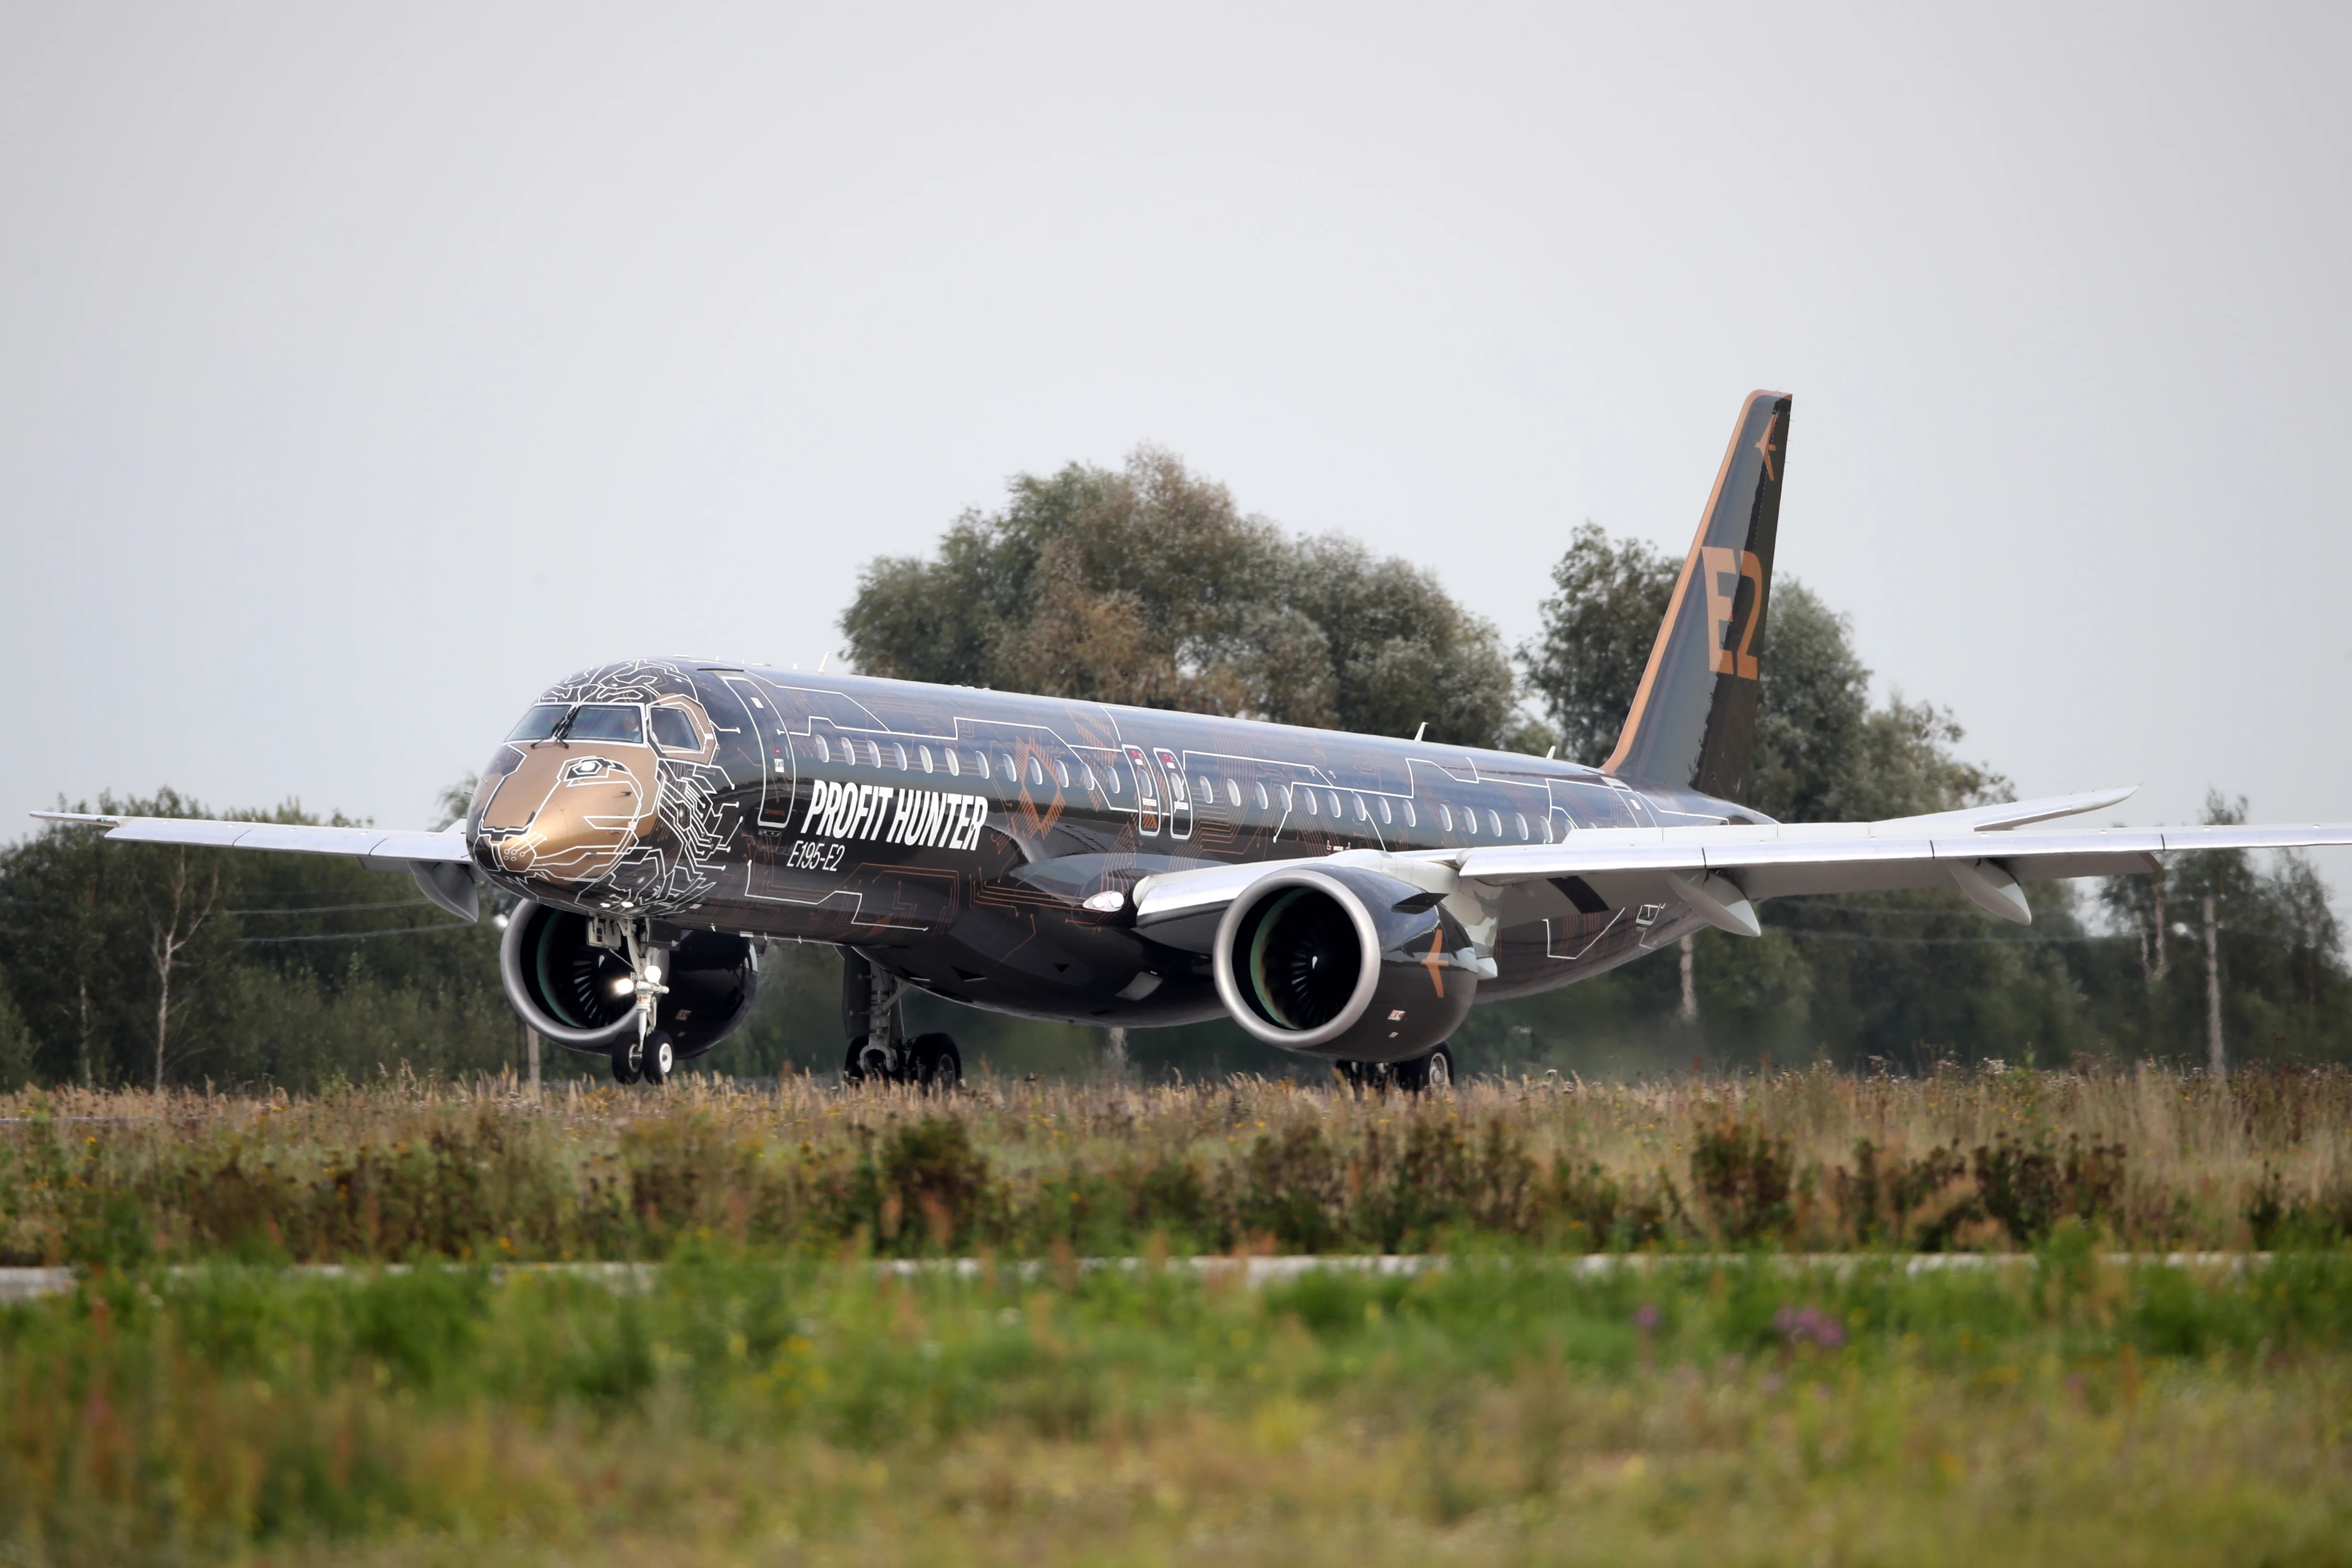 MOSCOW REGION, RUSSIA - AUGUST 26, 2019: An Embraer E195-E2 jet airliner during preparations for the MAKS-2019 International Aviation and Space Salon in the town of Zhukovsky, Moscow Region. Marina Lystseva/TASS (Photo by Marina LystsevaTASS via Getty Images)